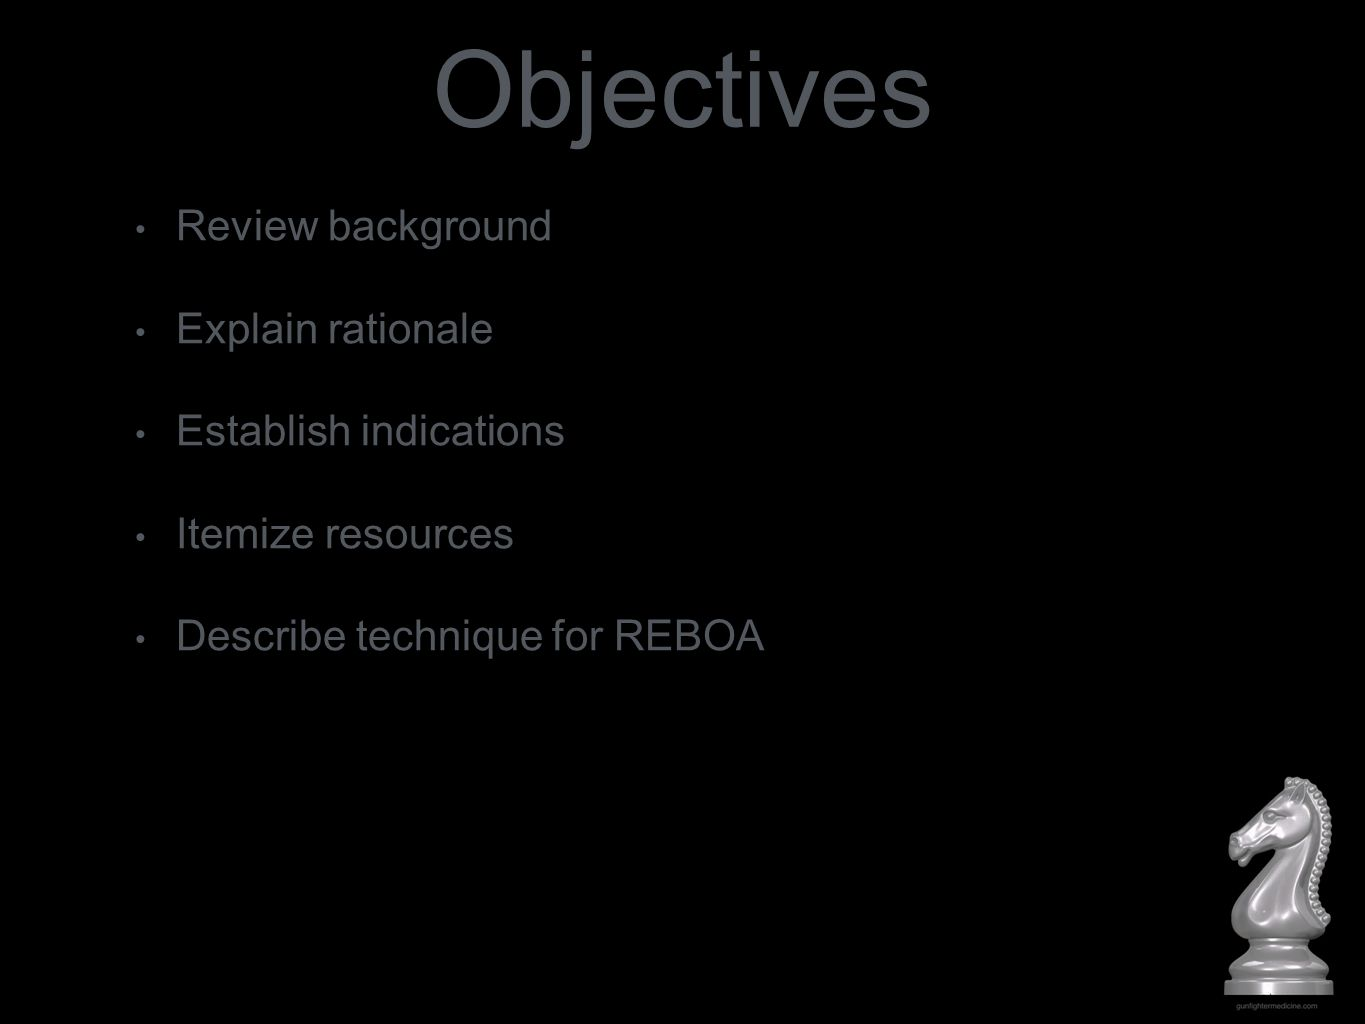 The skills and technology for REBOA are available.